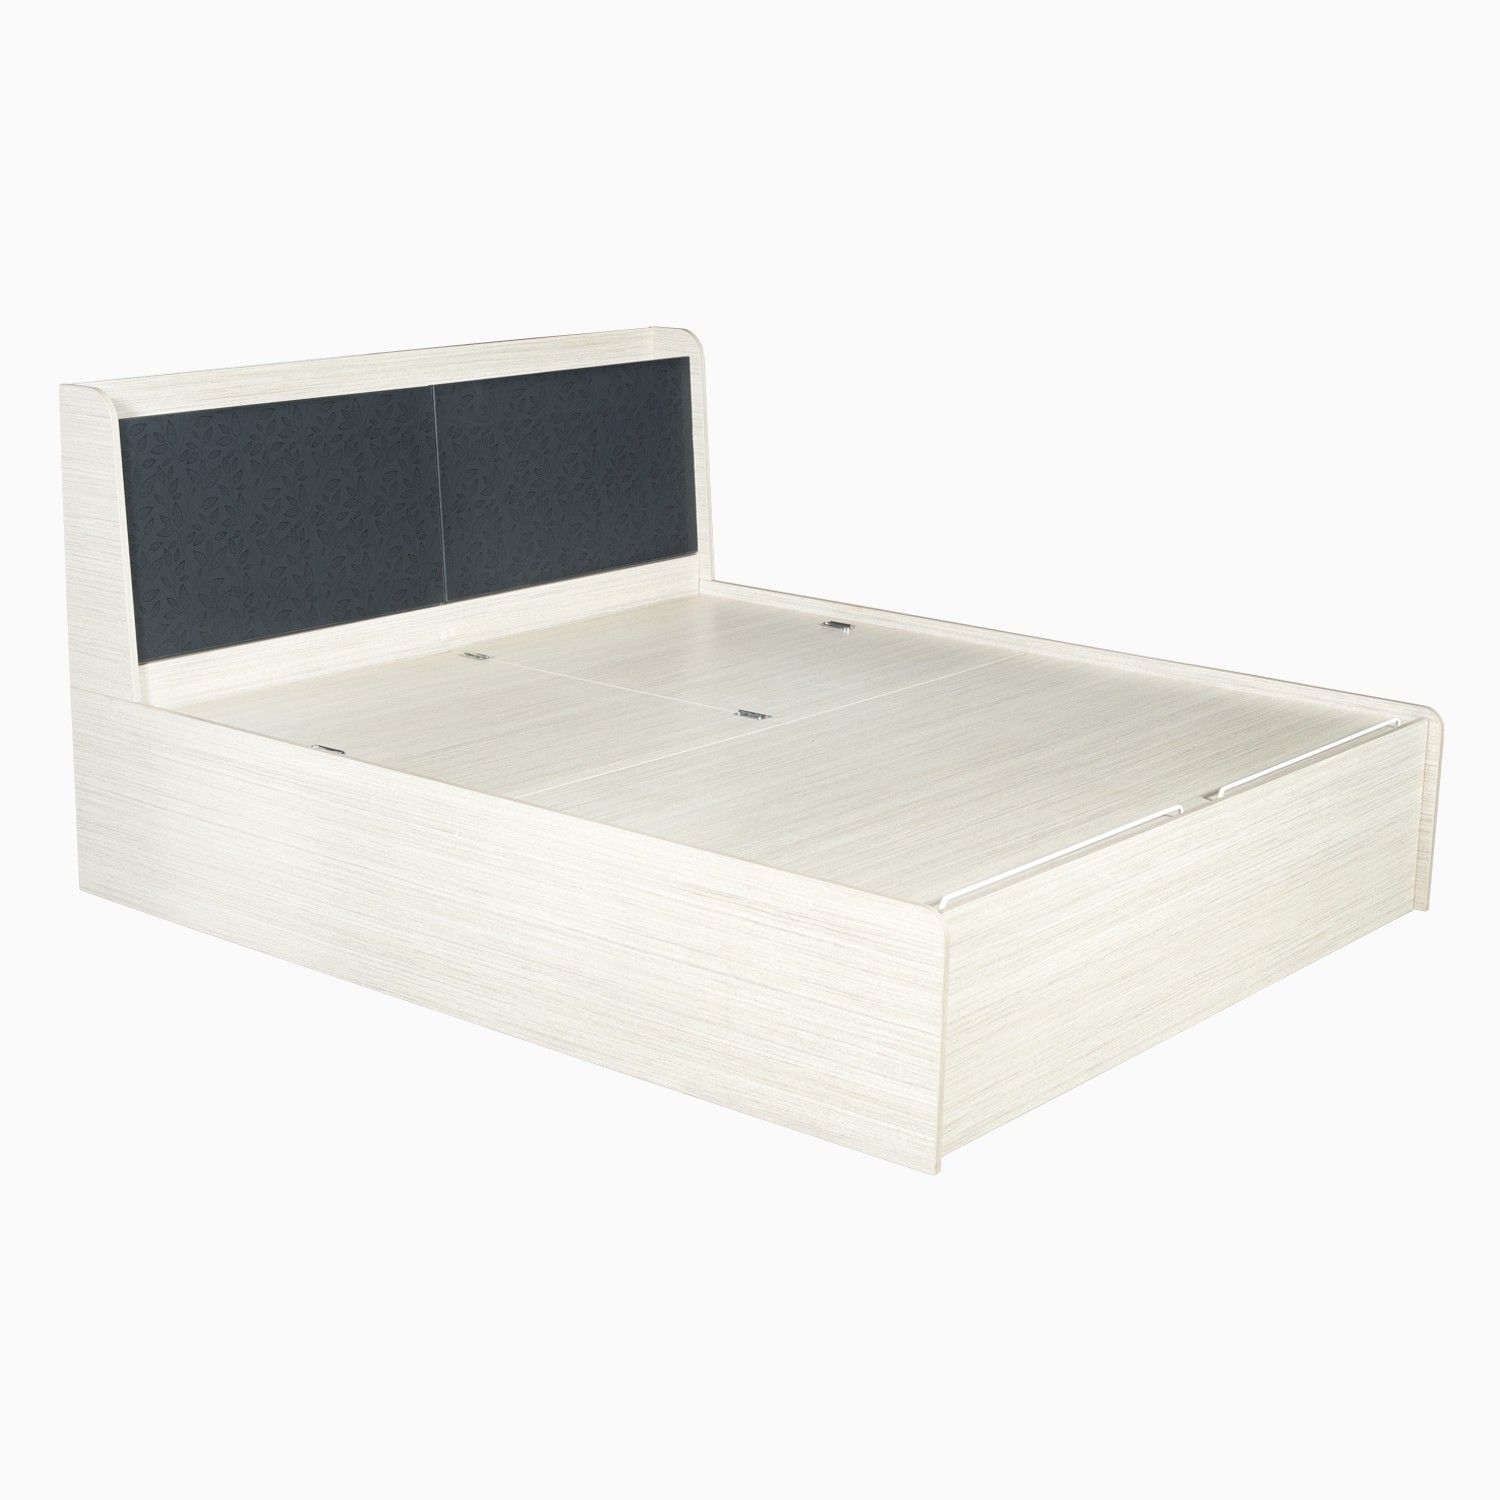 39ef91bbabf Godrej Interio Florid pro Engineered Wood King Bed With Storage ...